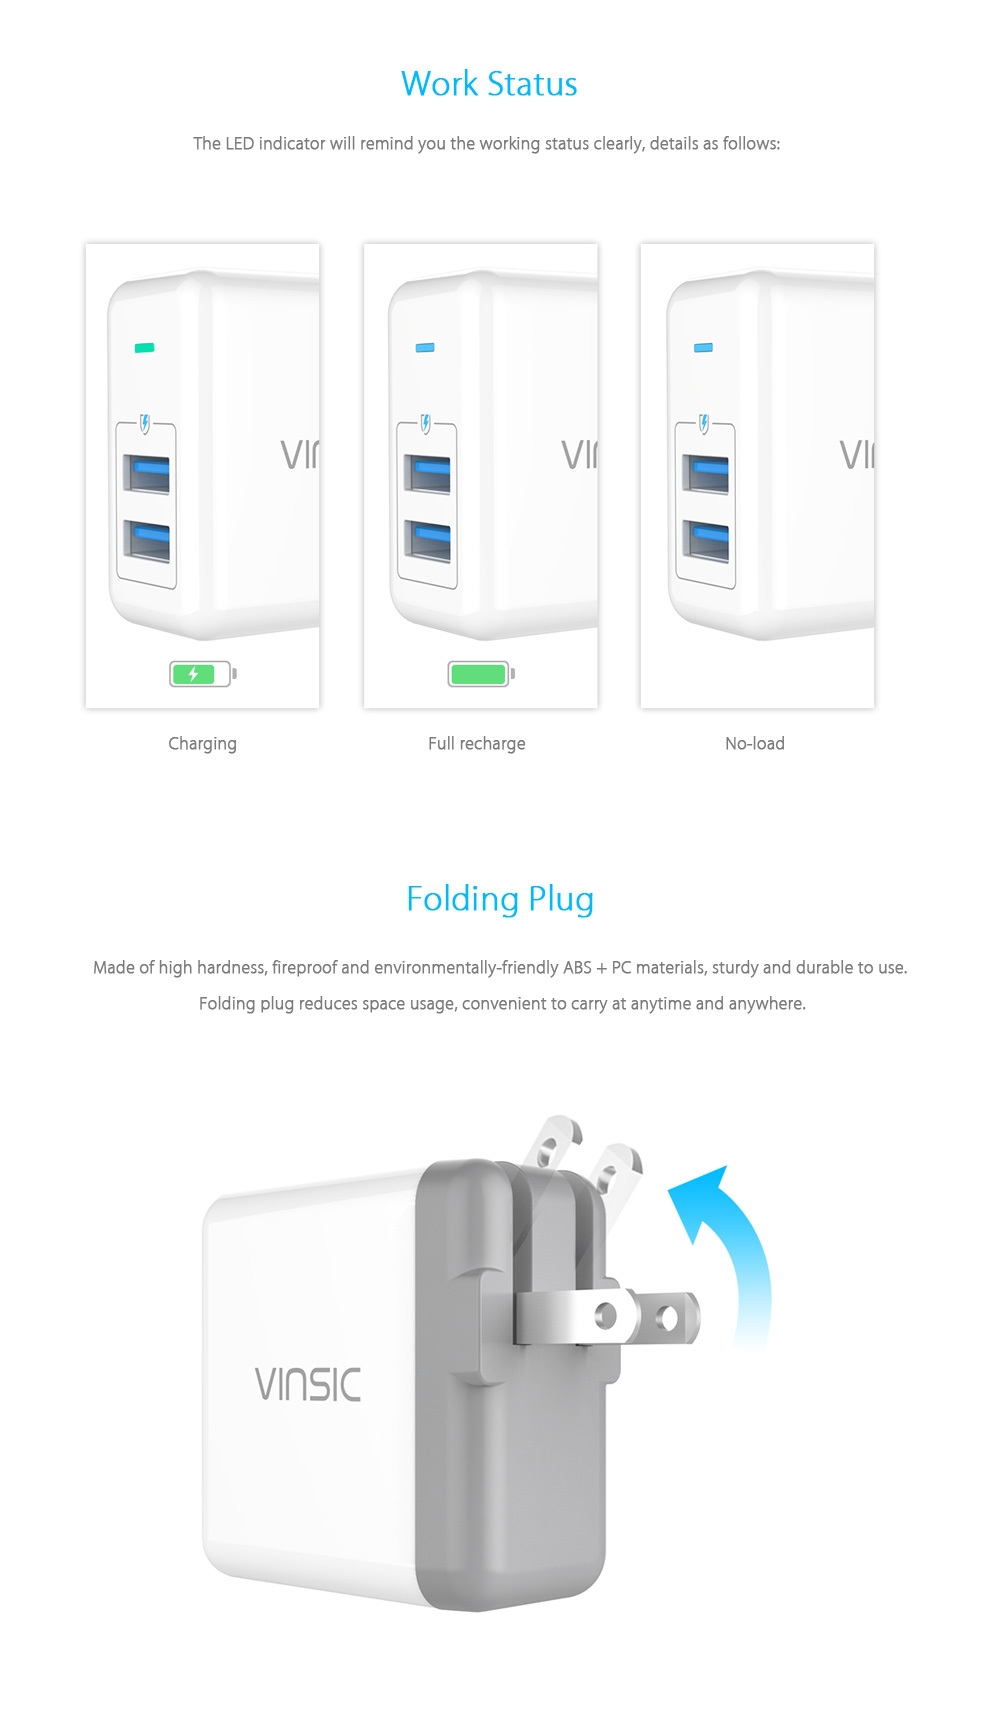 VINSIC VSCW208 5V 4.8A ( Max ) 24W Wall Charger Dual USB Output